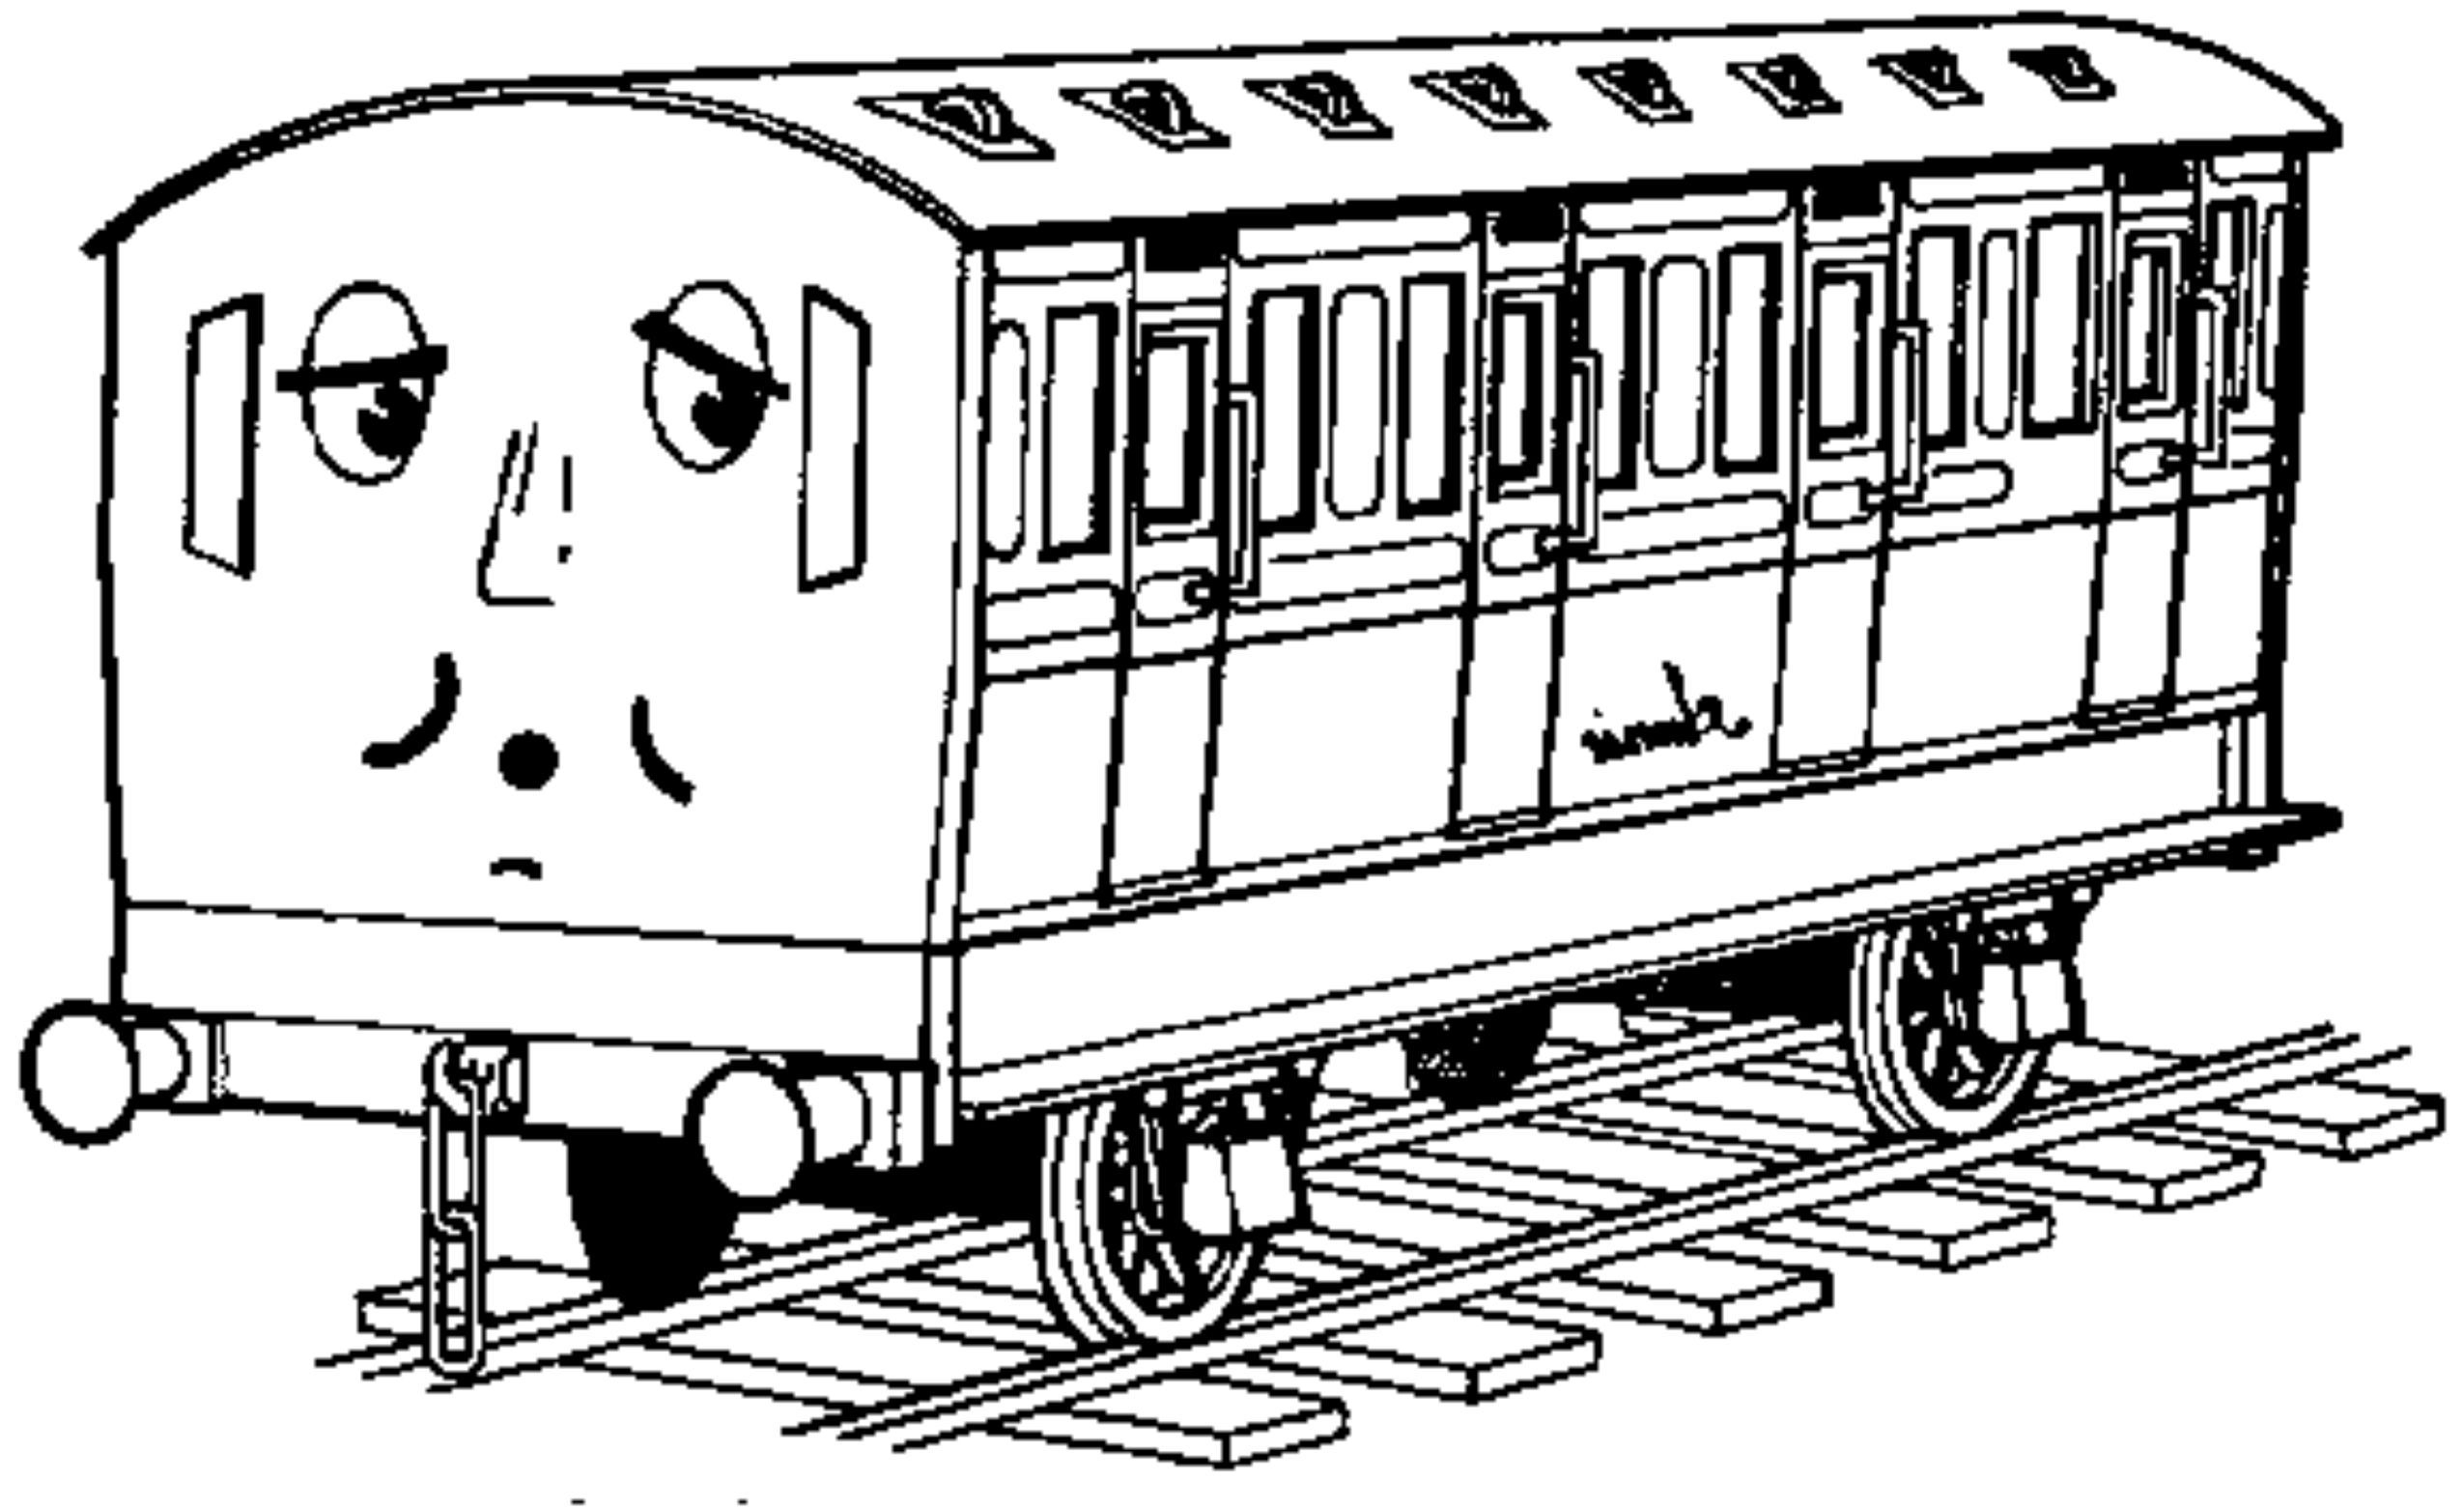 thomas and friends coloring pages - printable thomas the train coloring pages